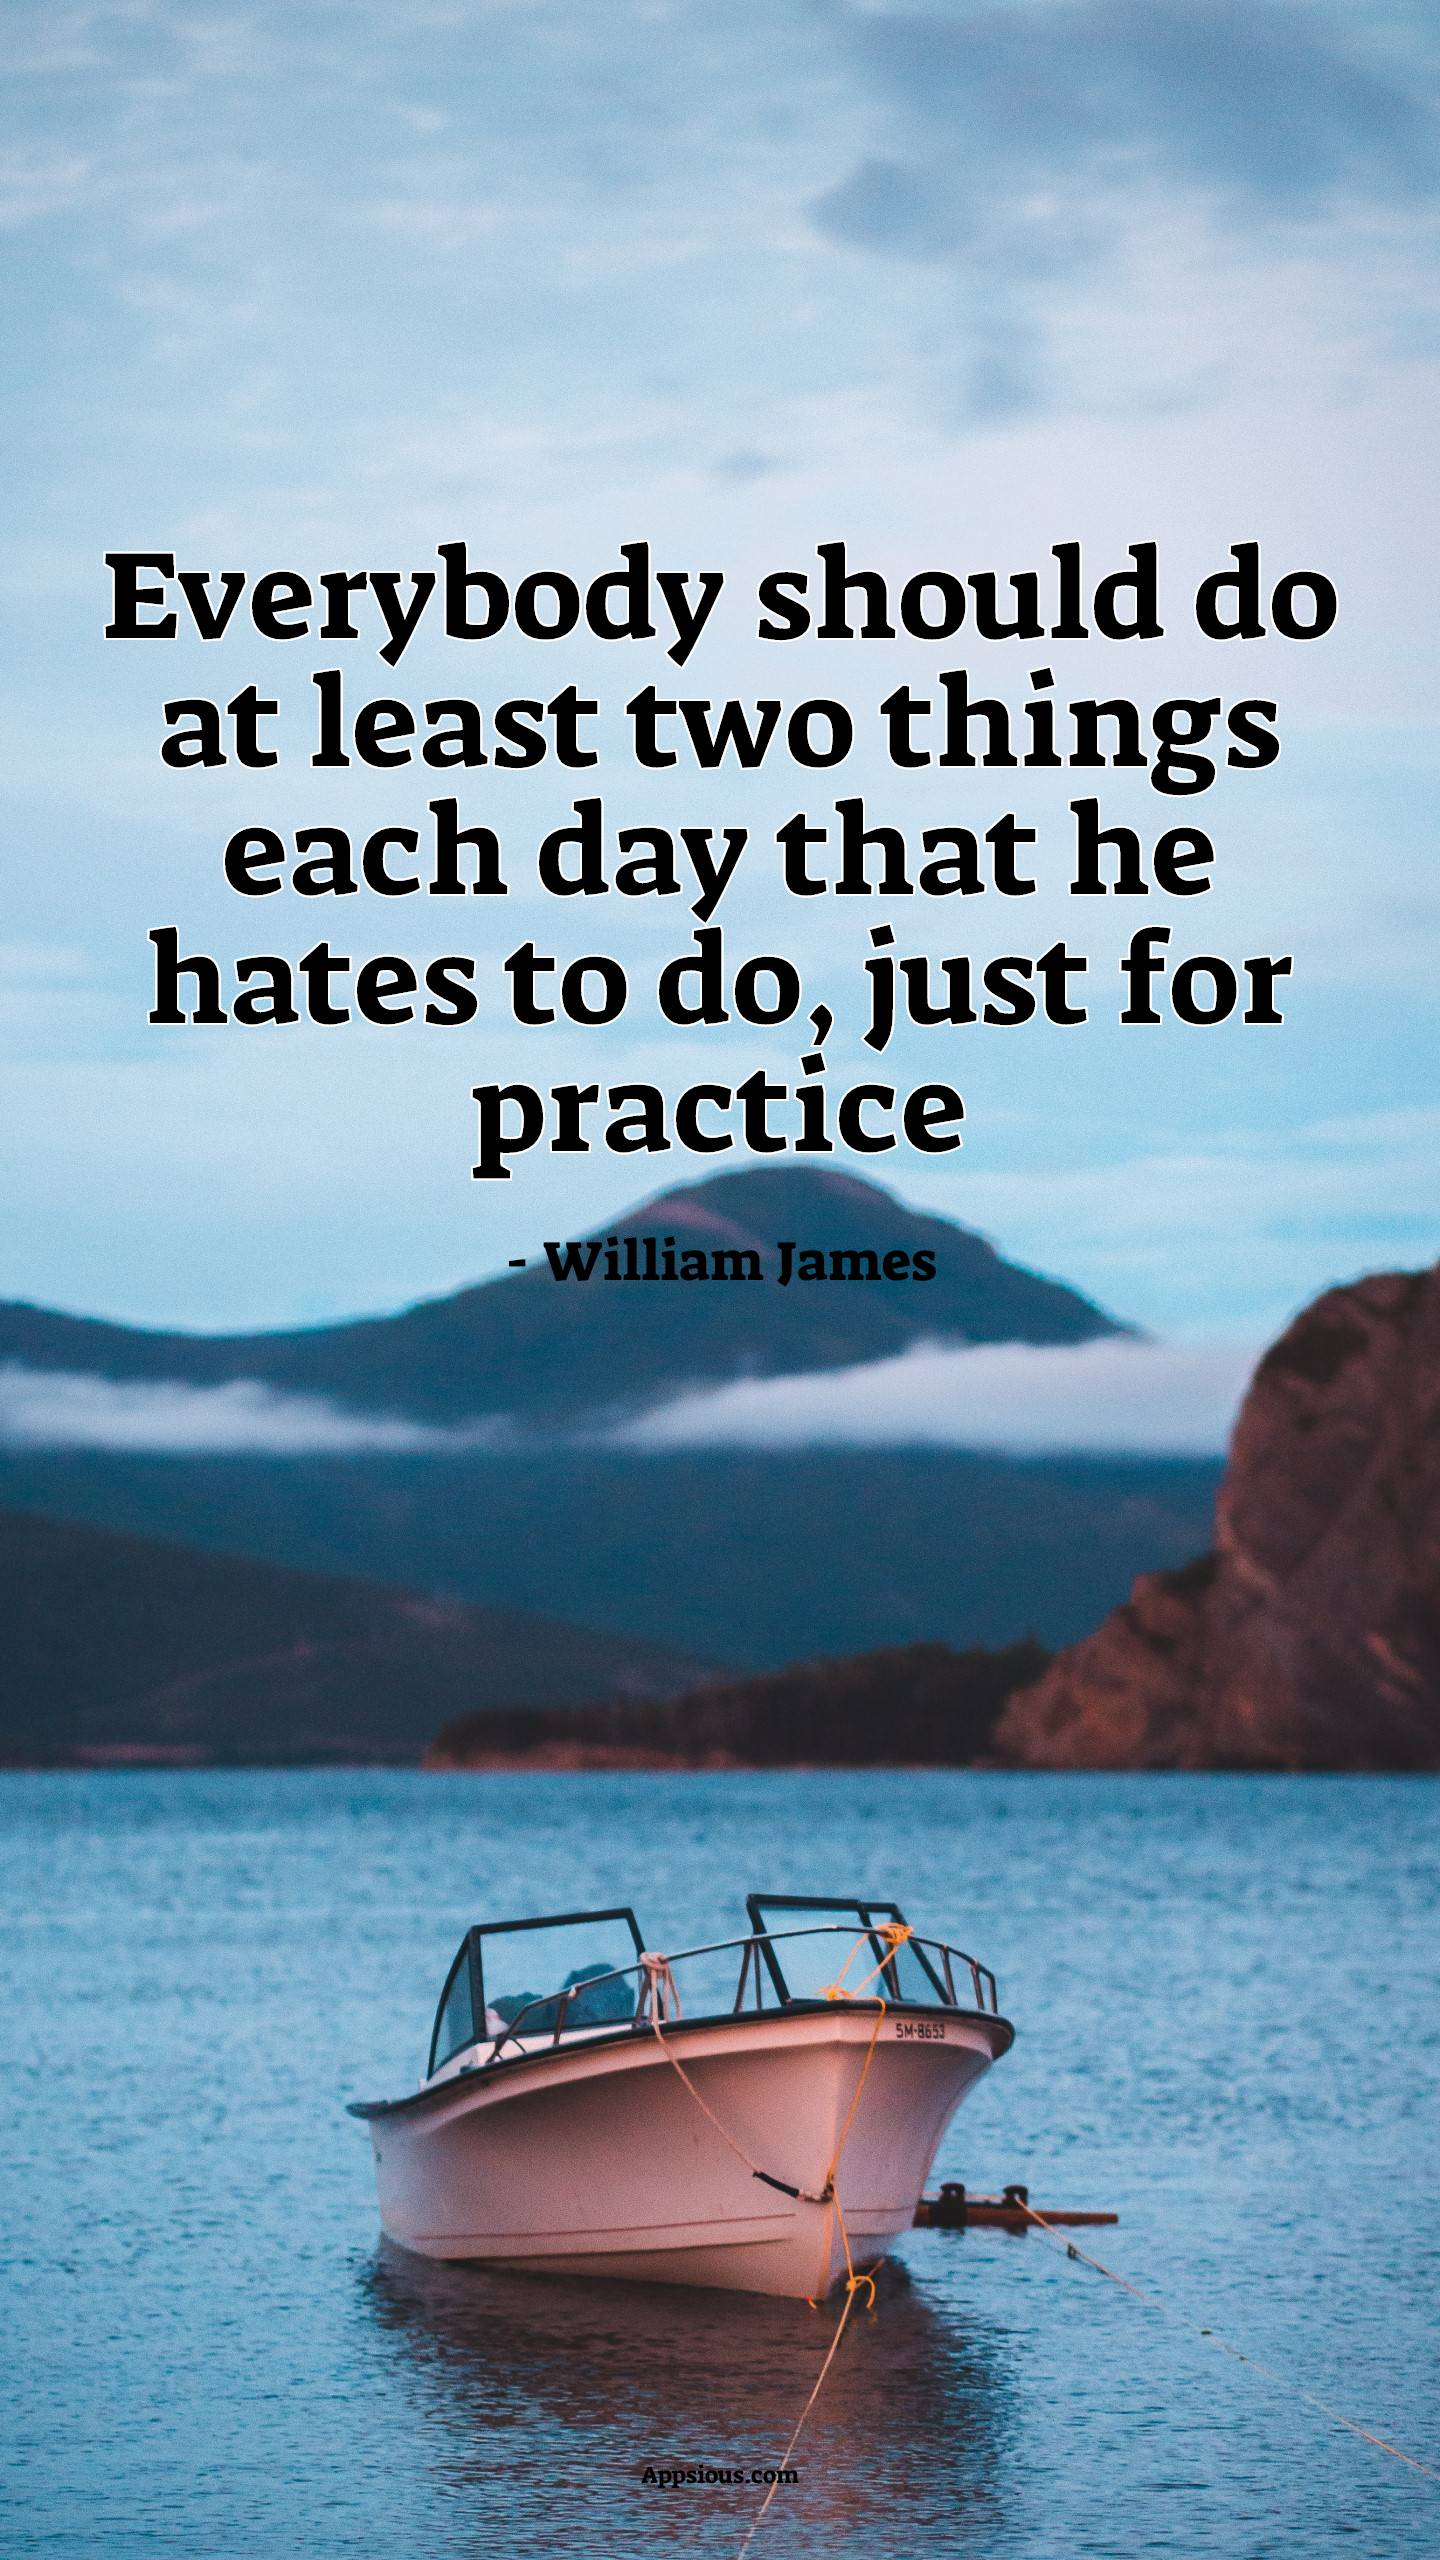 Everybody should do at least two things each day that he hates to do, just for practice